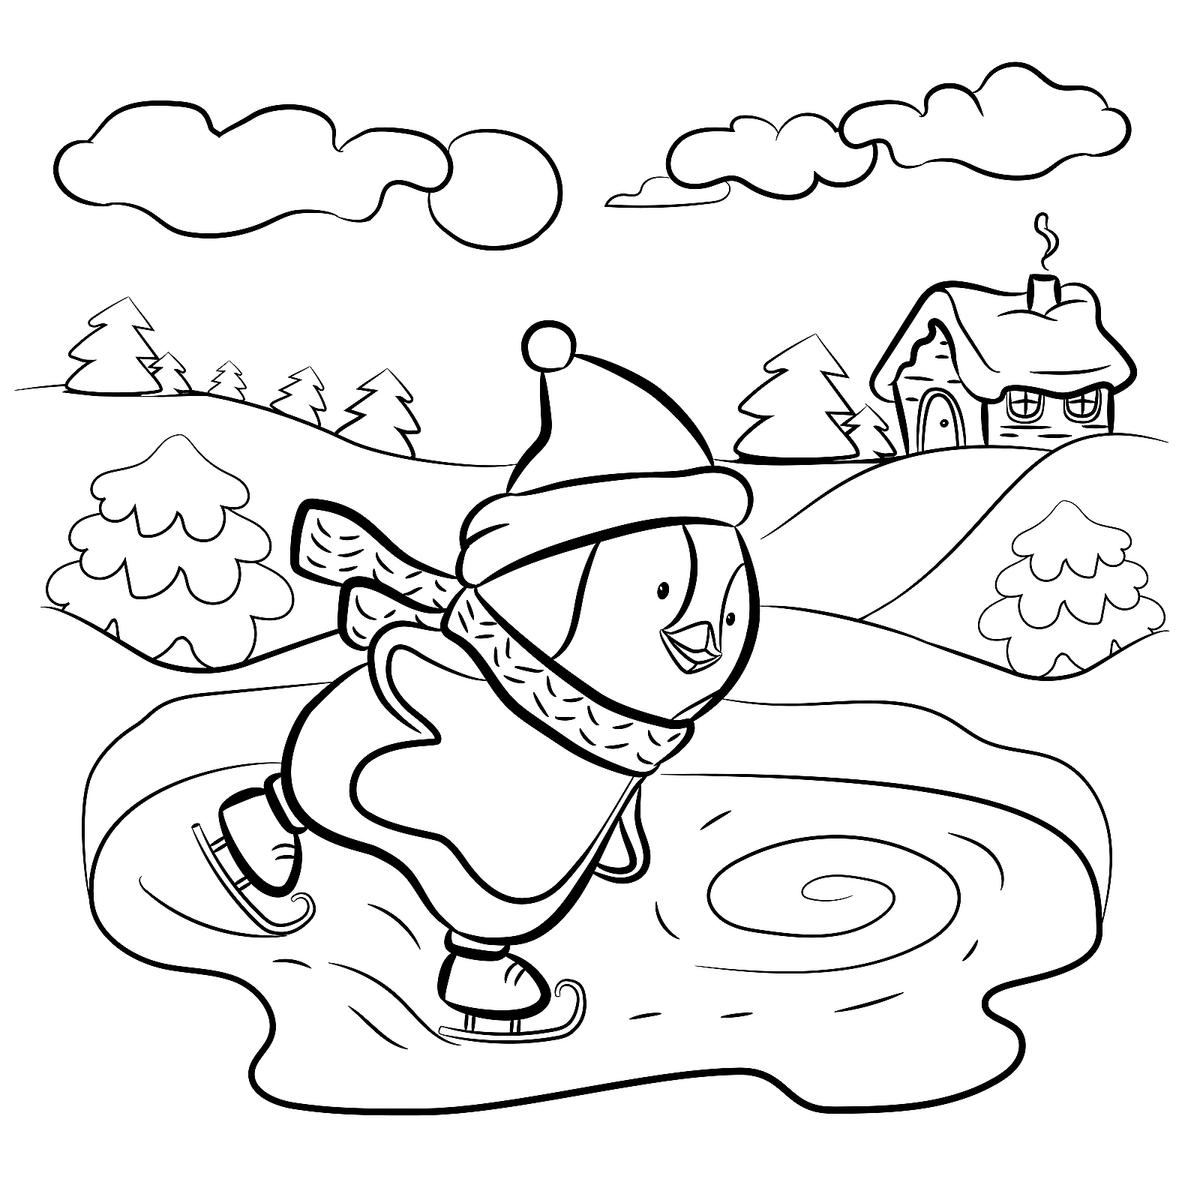 penguins ice skating coloring pages - photo#8